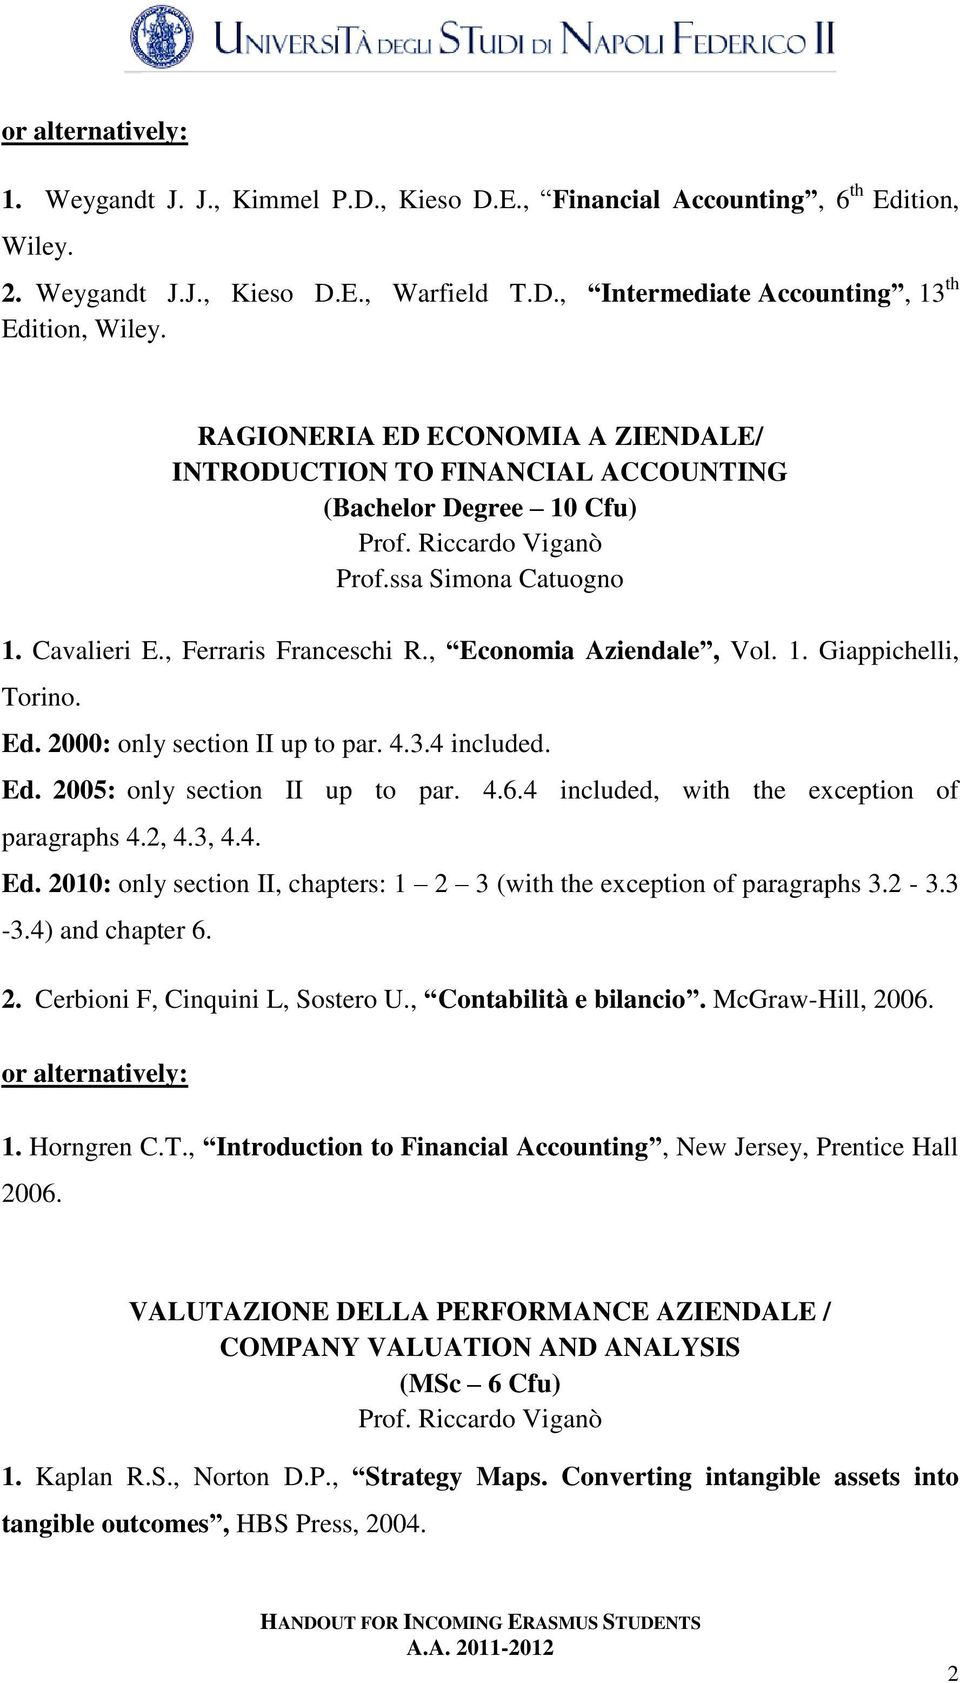 , Economia Aziendale, Vol. 1. Giappichelli, Torino. Ed. 2000: only section II up to par. 4.3.4 included. Ed. 2005: only section II up to par. 4.6.4 included, with the exception of paragraphs 4.2, 4.